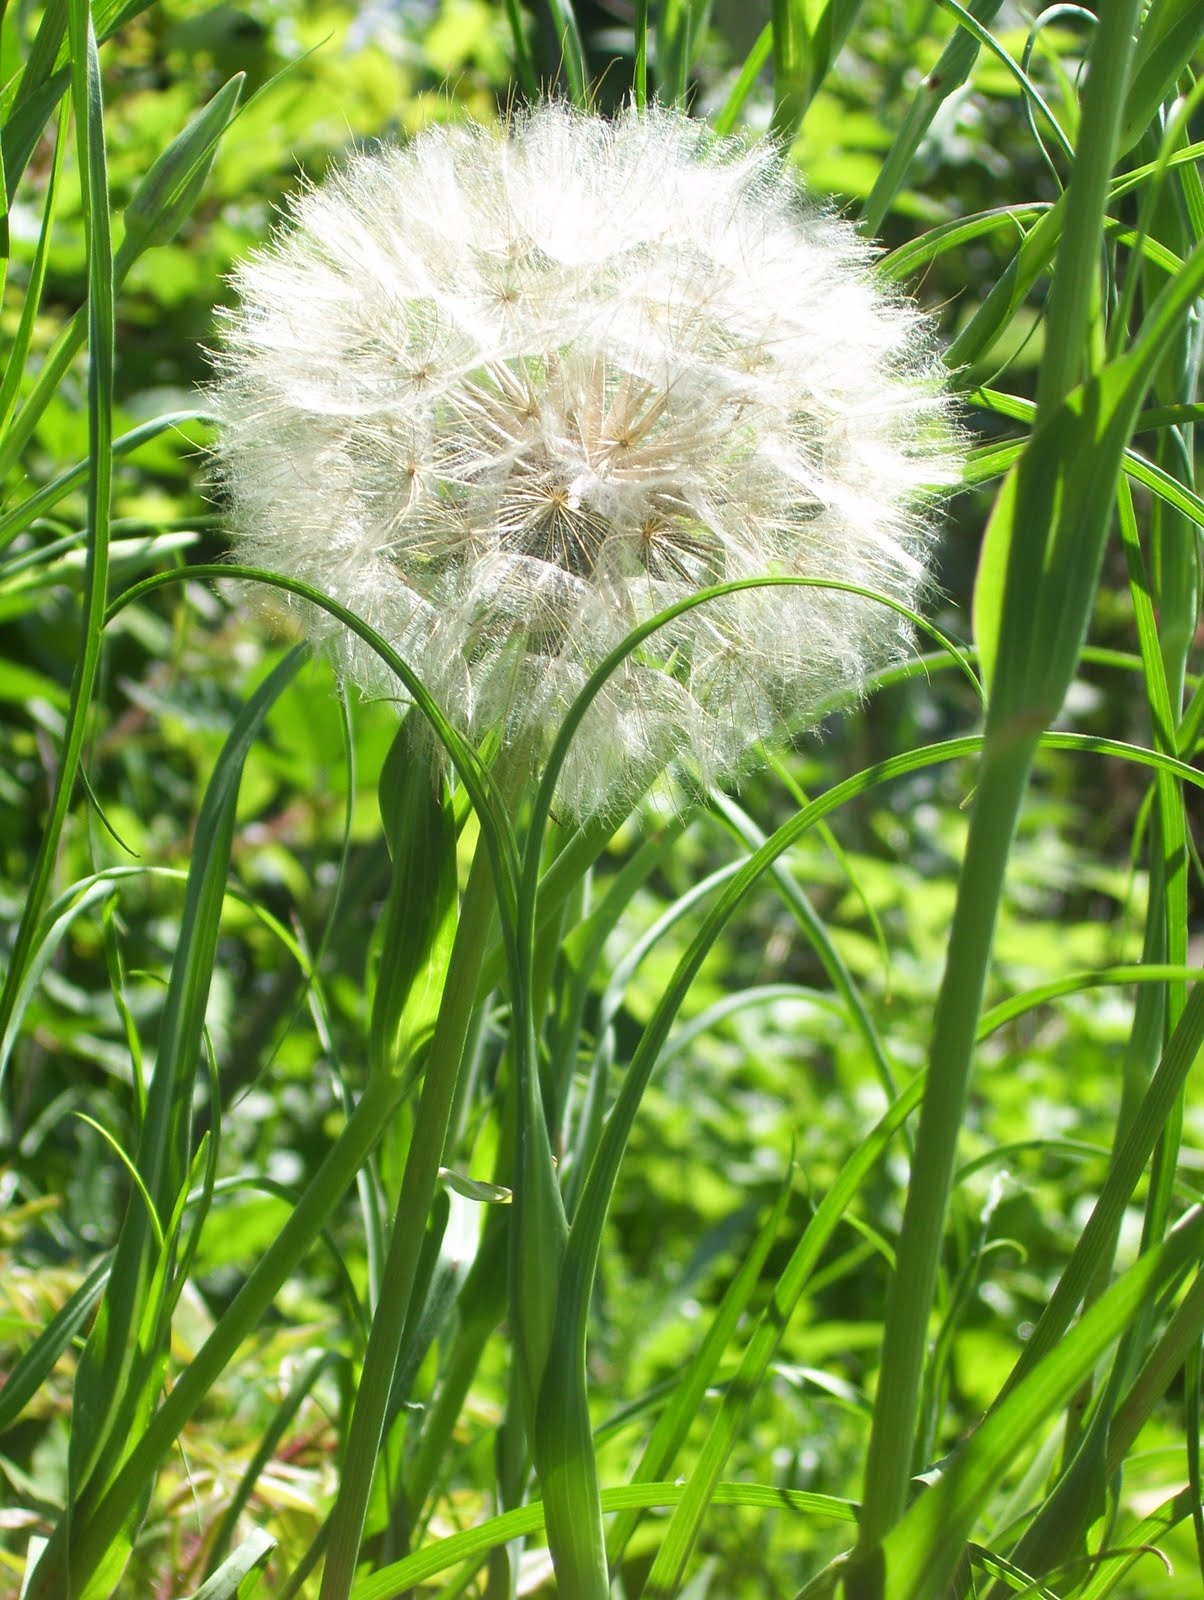 One Huge Dandelion Type Flower Officially Known as Salsify ...